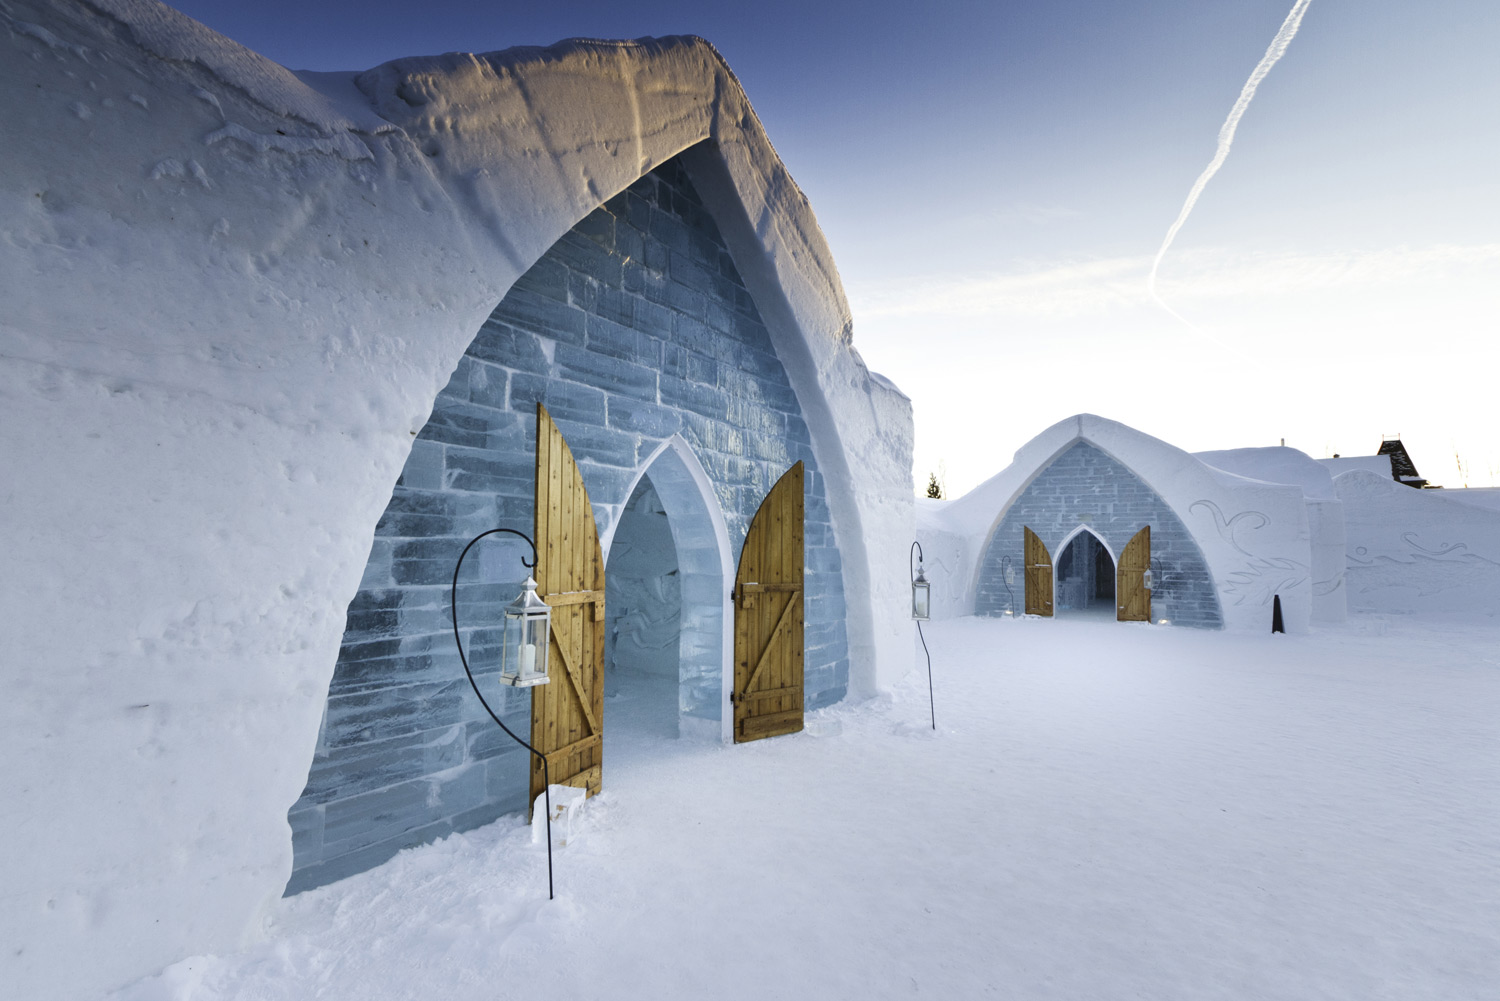 Stay at Hotel de Glace in Quebec City